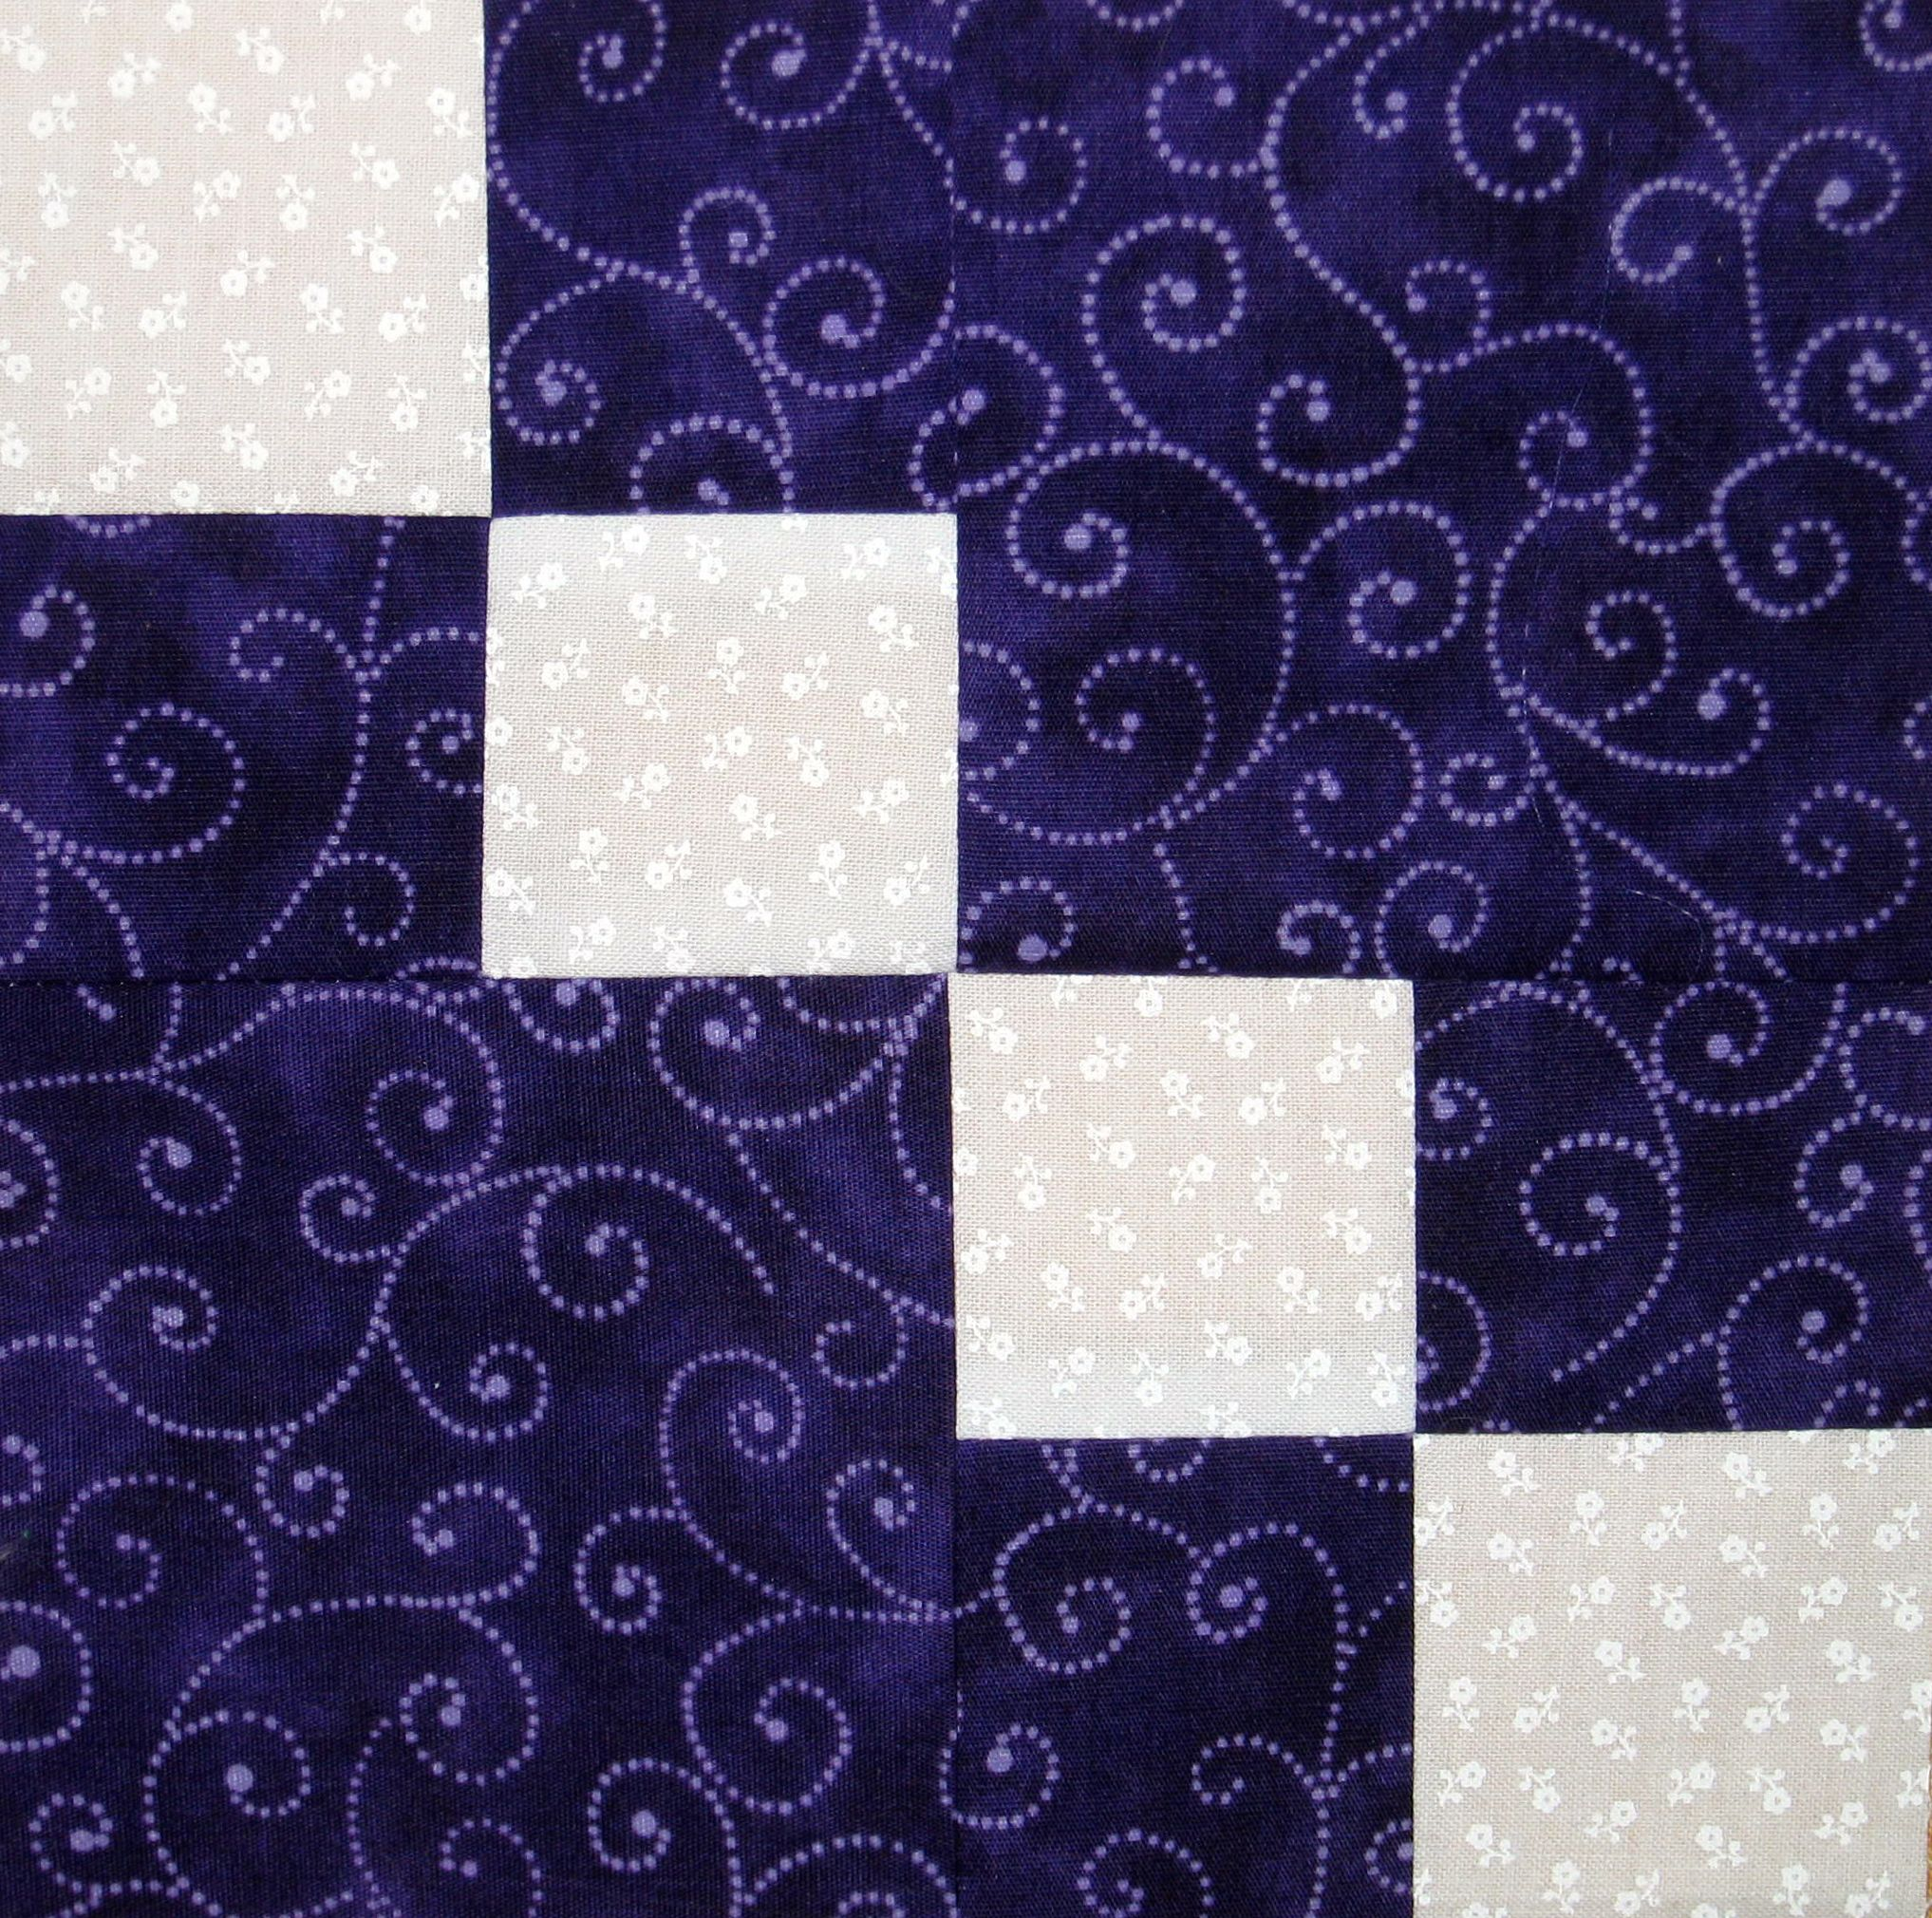 Four Patch Quilt Block Variation Projects to Try